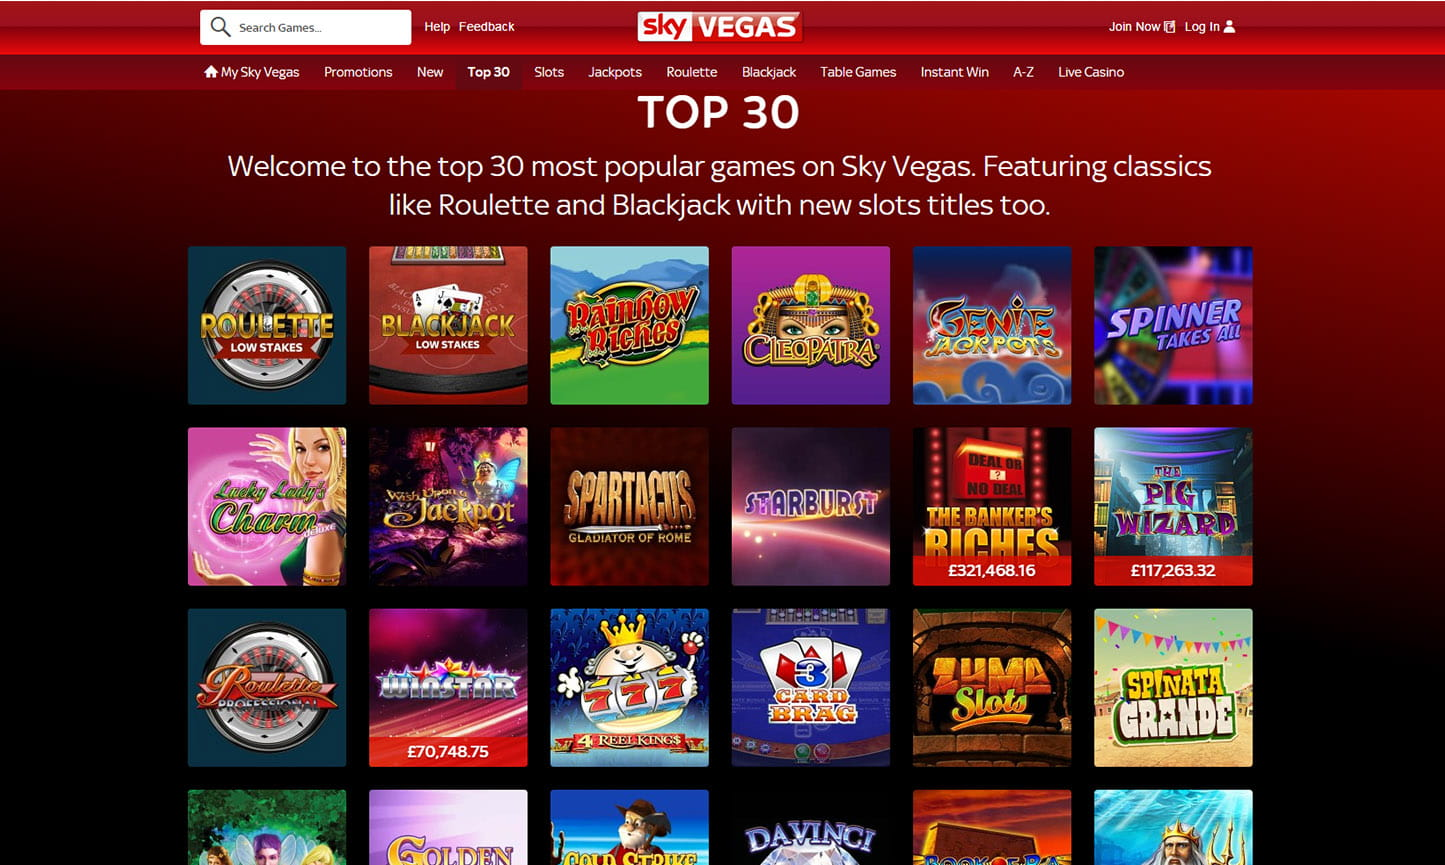 casino games | All the action from the casino floor: news, views and more